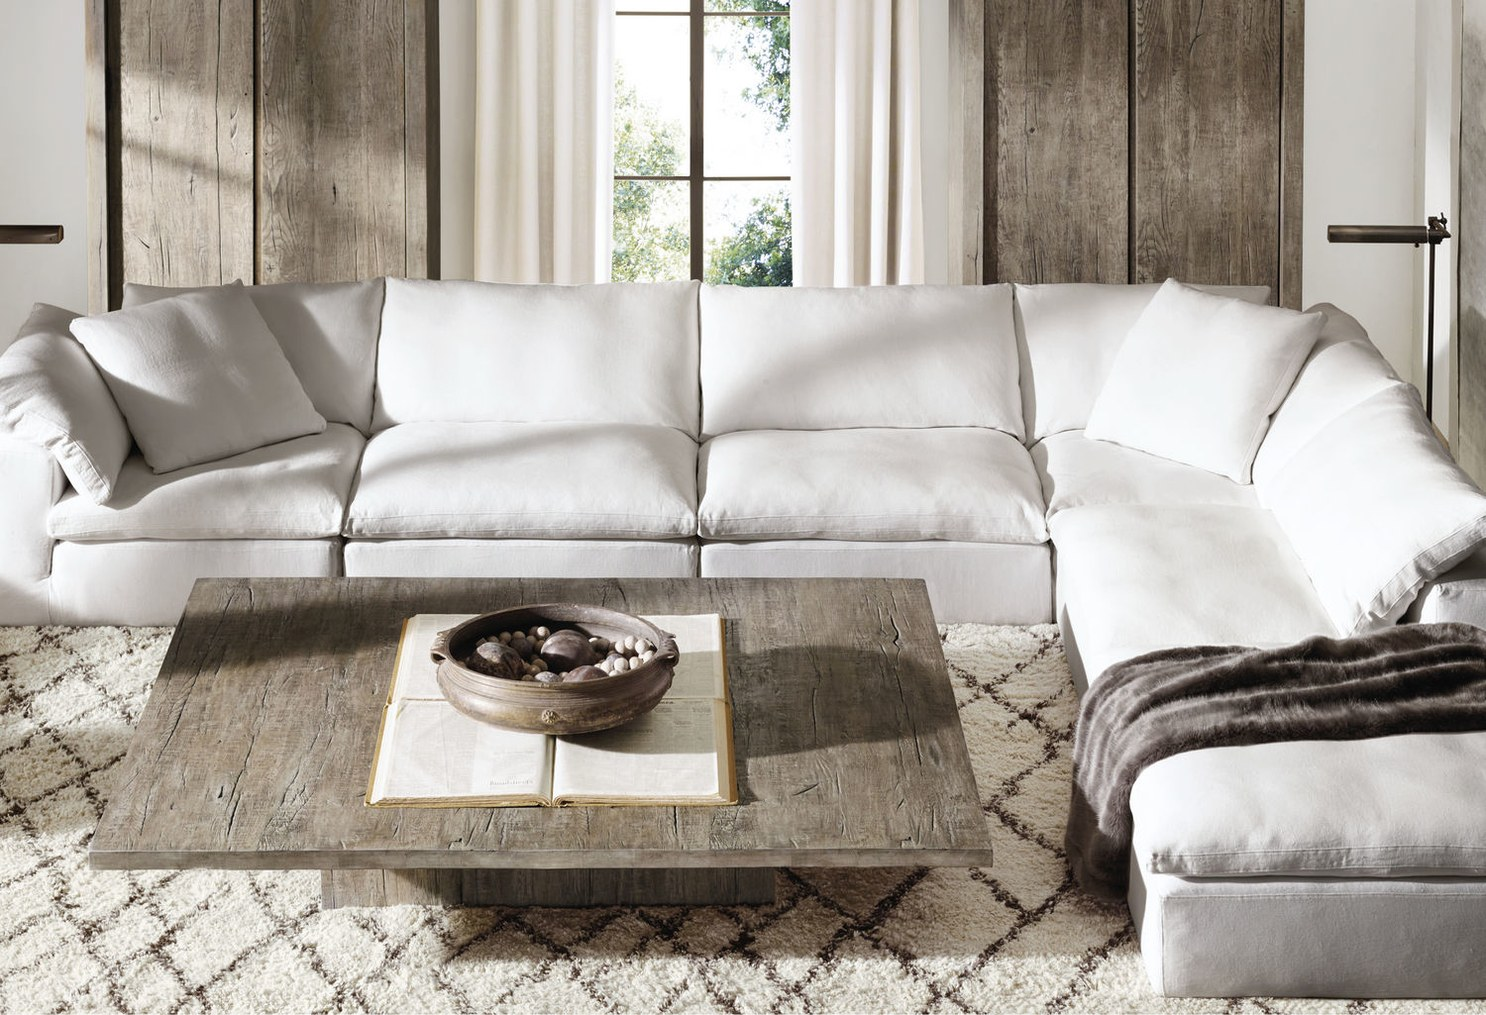 Rh Cloud Sofa The Cloud Collection Restoration Hardware Mile High Style